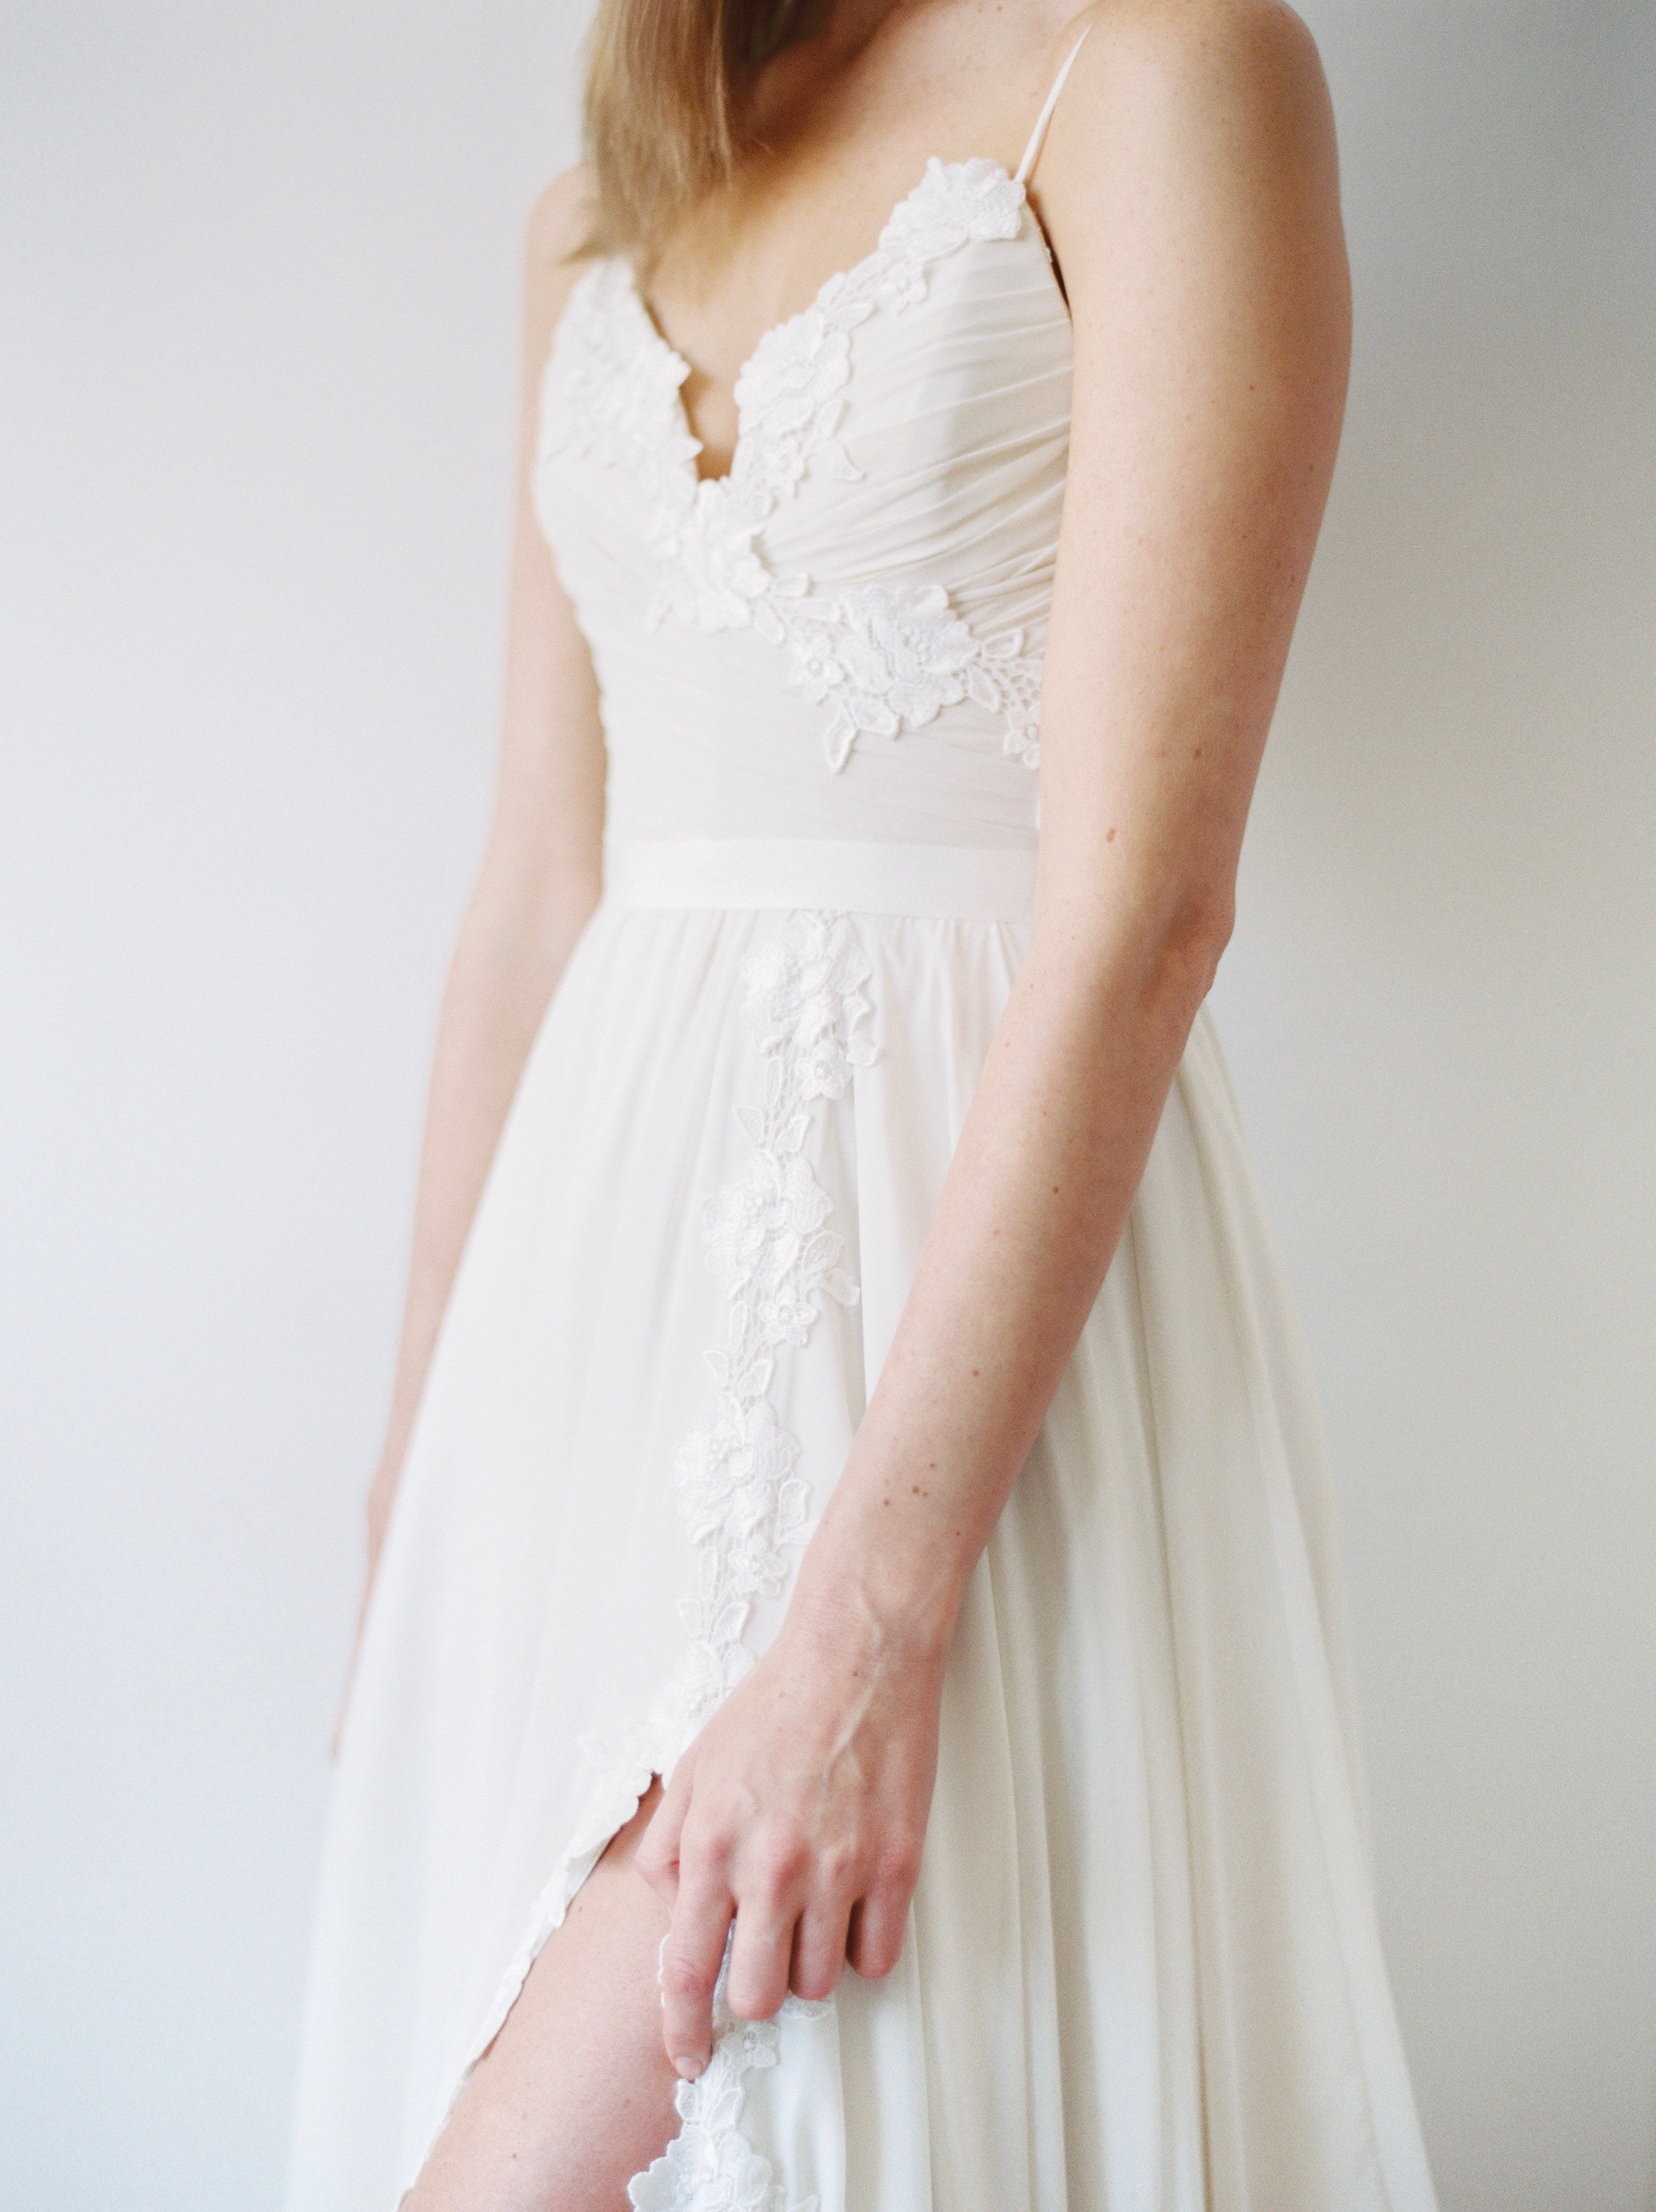 Cordova wedding dress by Truvelle